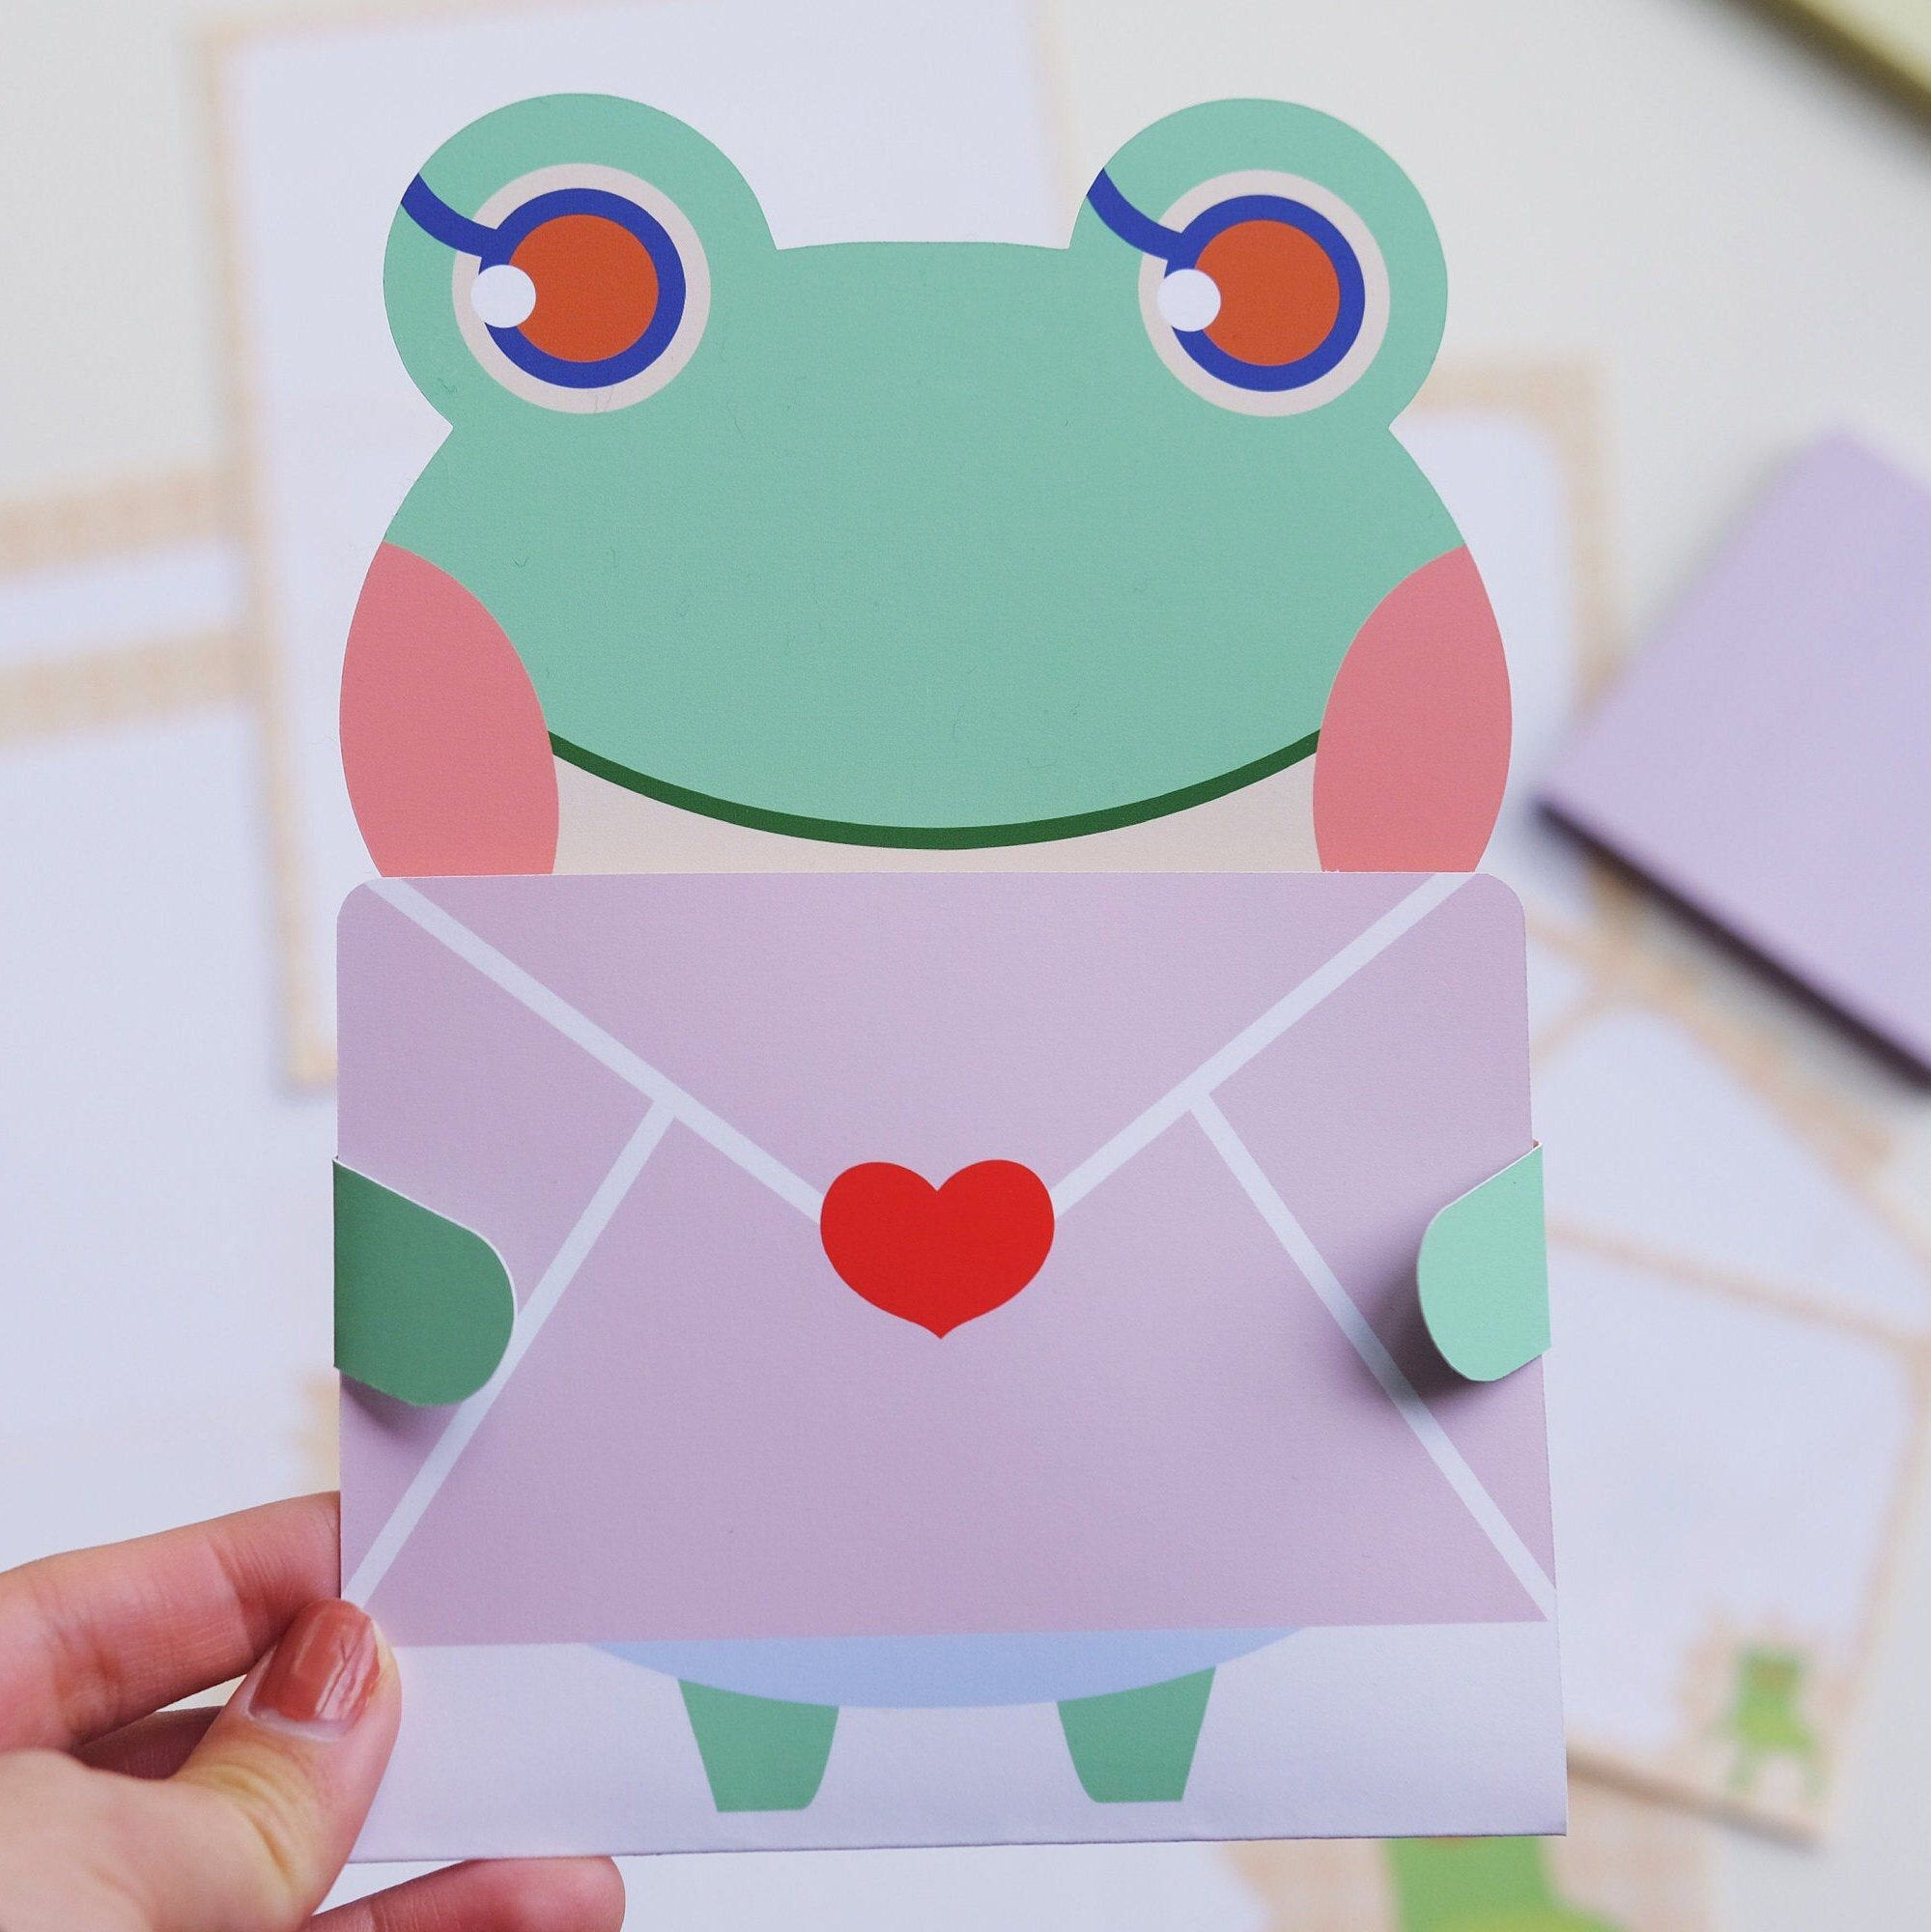 Animal Crossing Lily Card in 2020 Animal crossing, Etsy